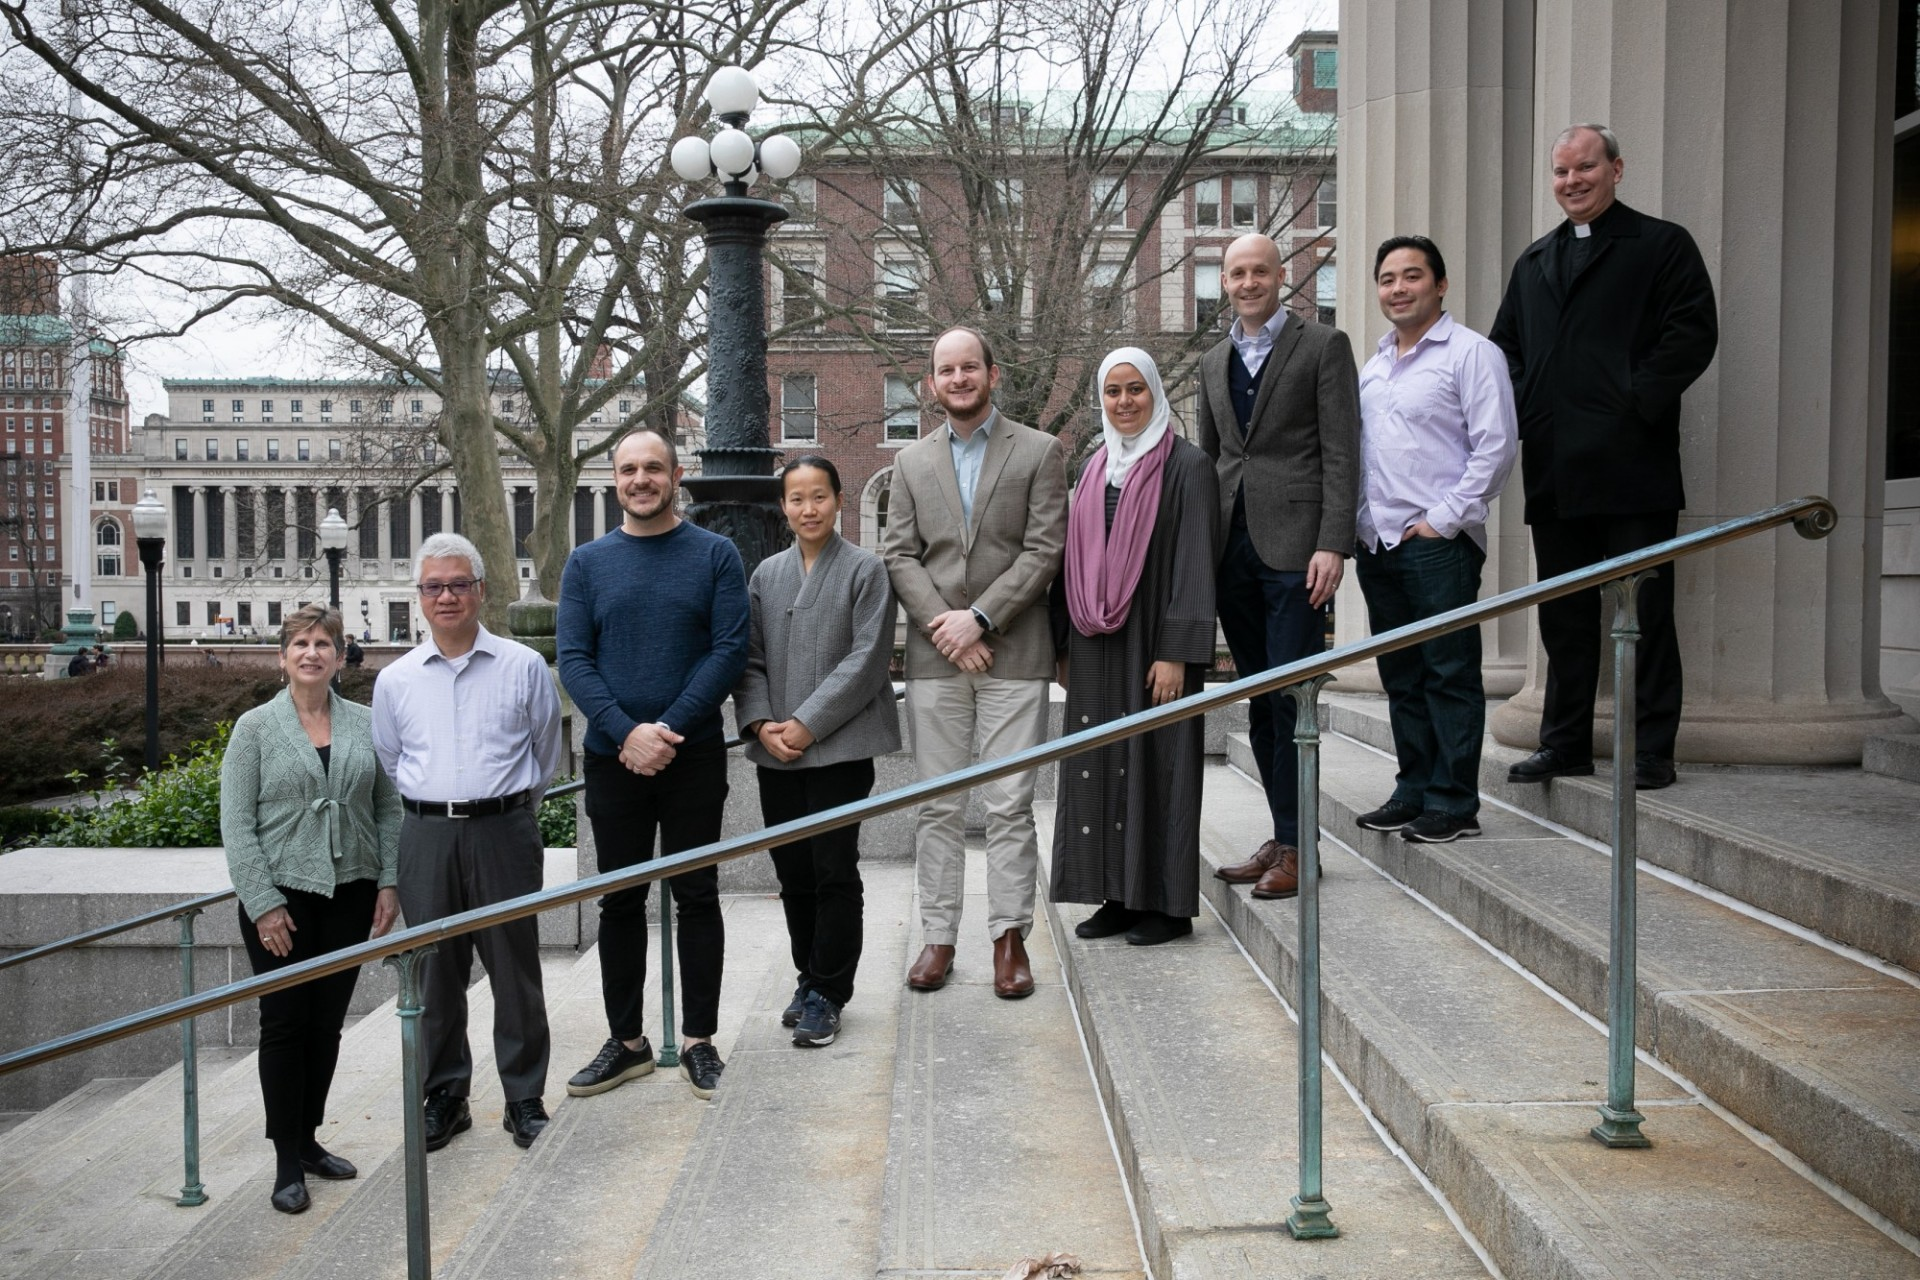 Our diverse religious life advisers on the stairs that lead up to Earl Hall.